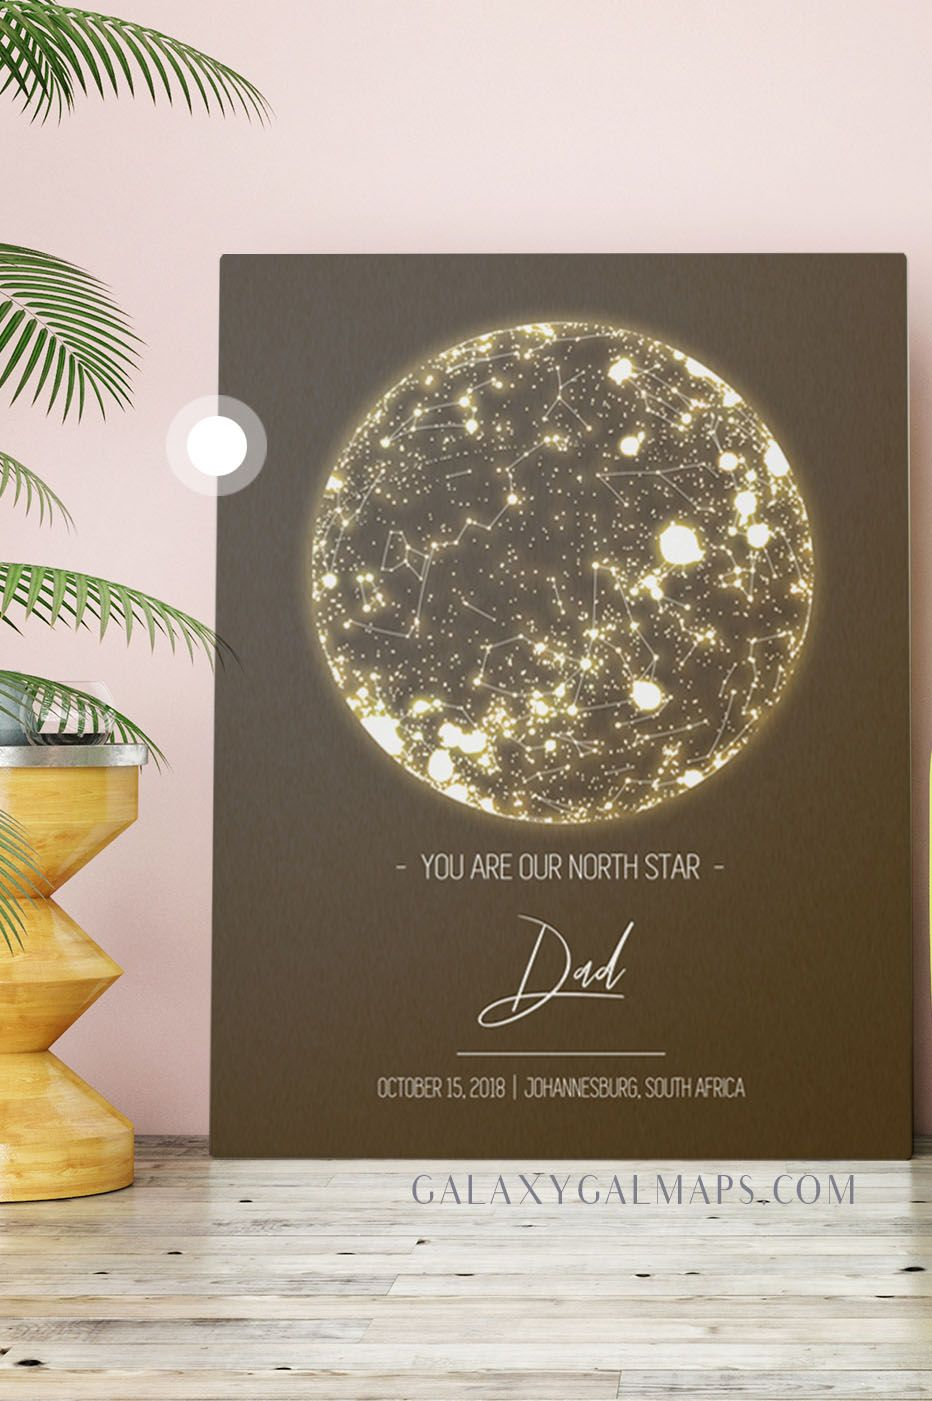 Your Personal Night Sky Map By Date And Place Gifts For Men Our House Birthday Gifts For Kids Personalised Gifts For Husband Anniversary Gifts For Husband